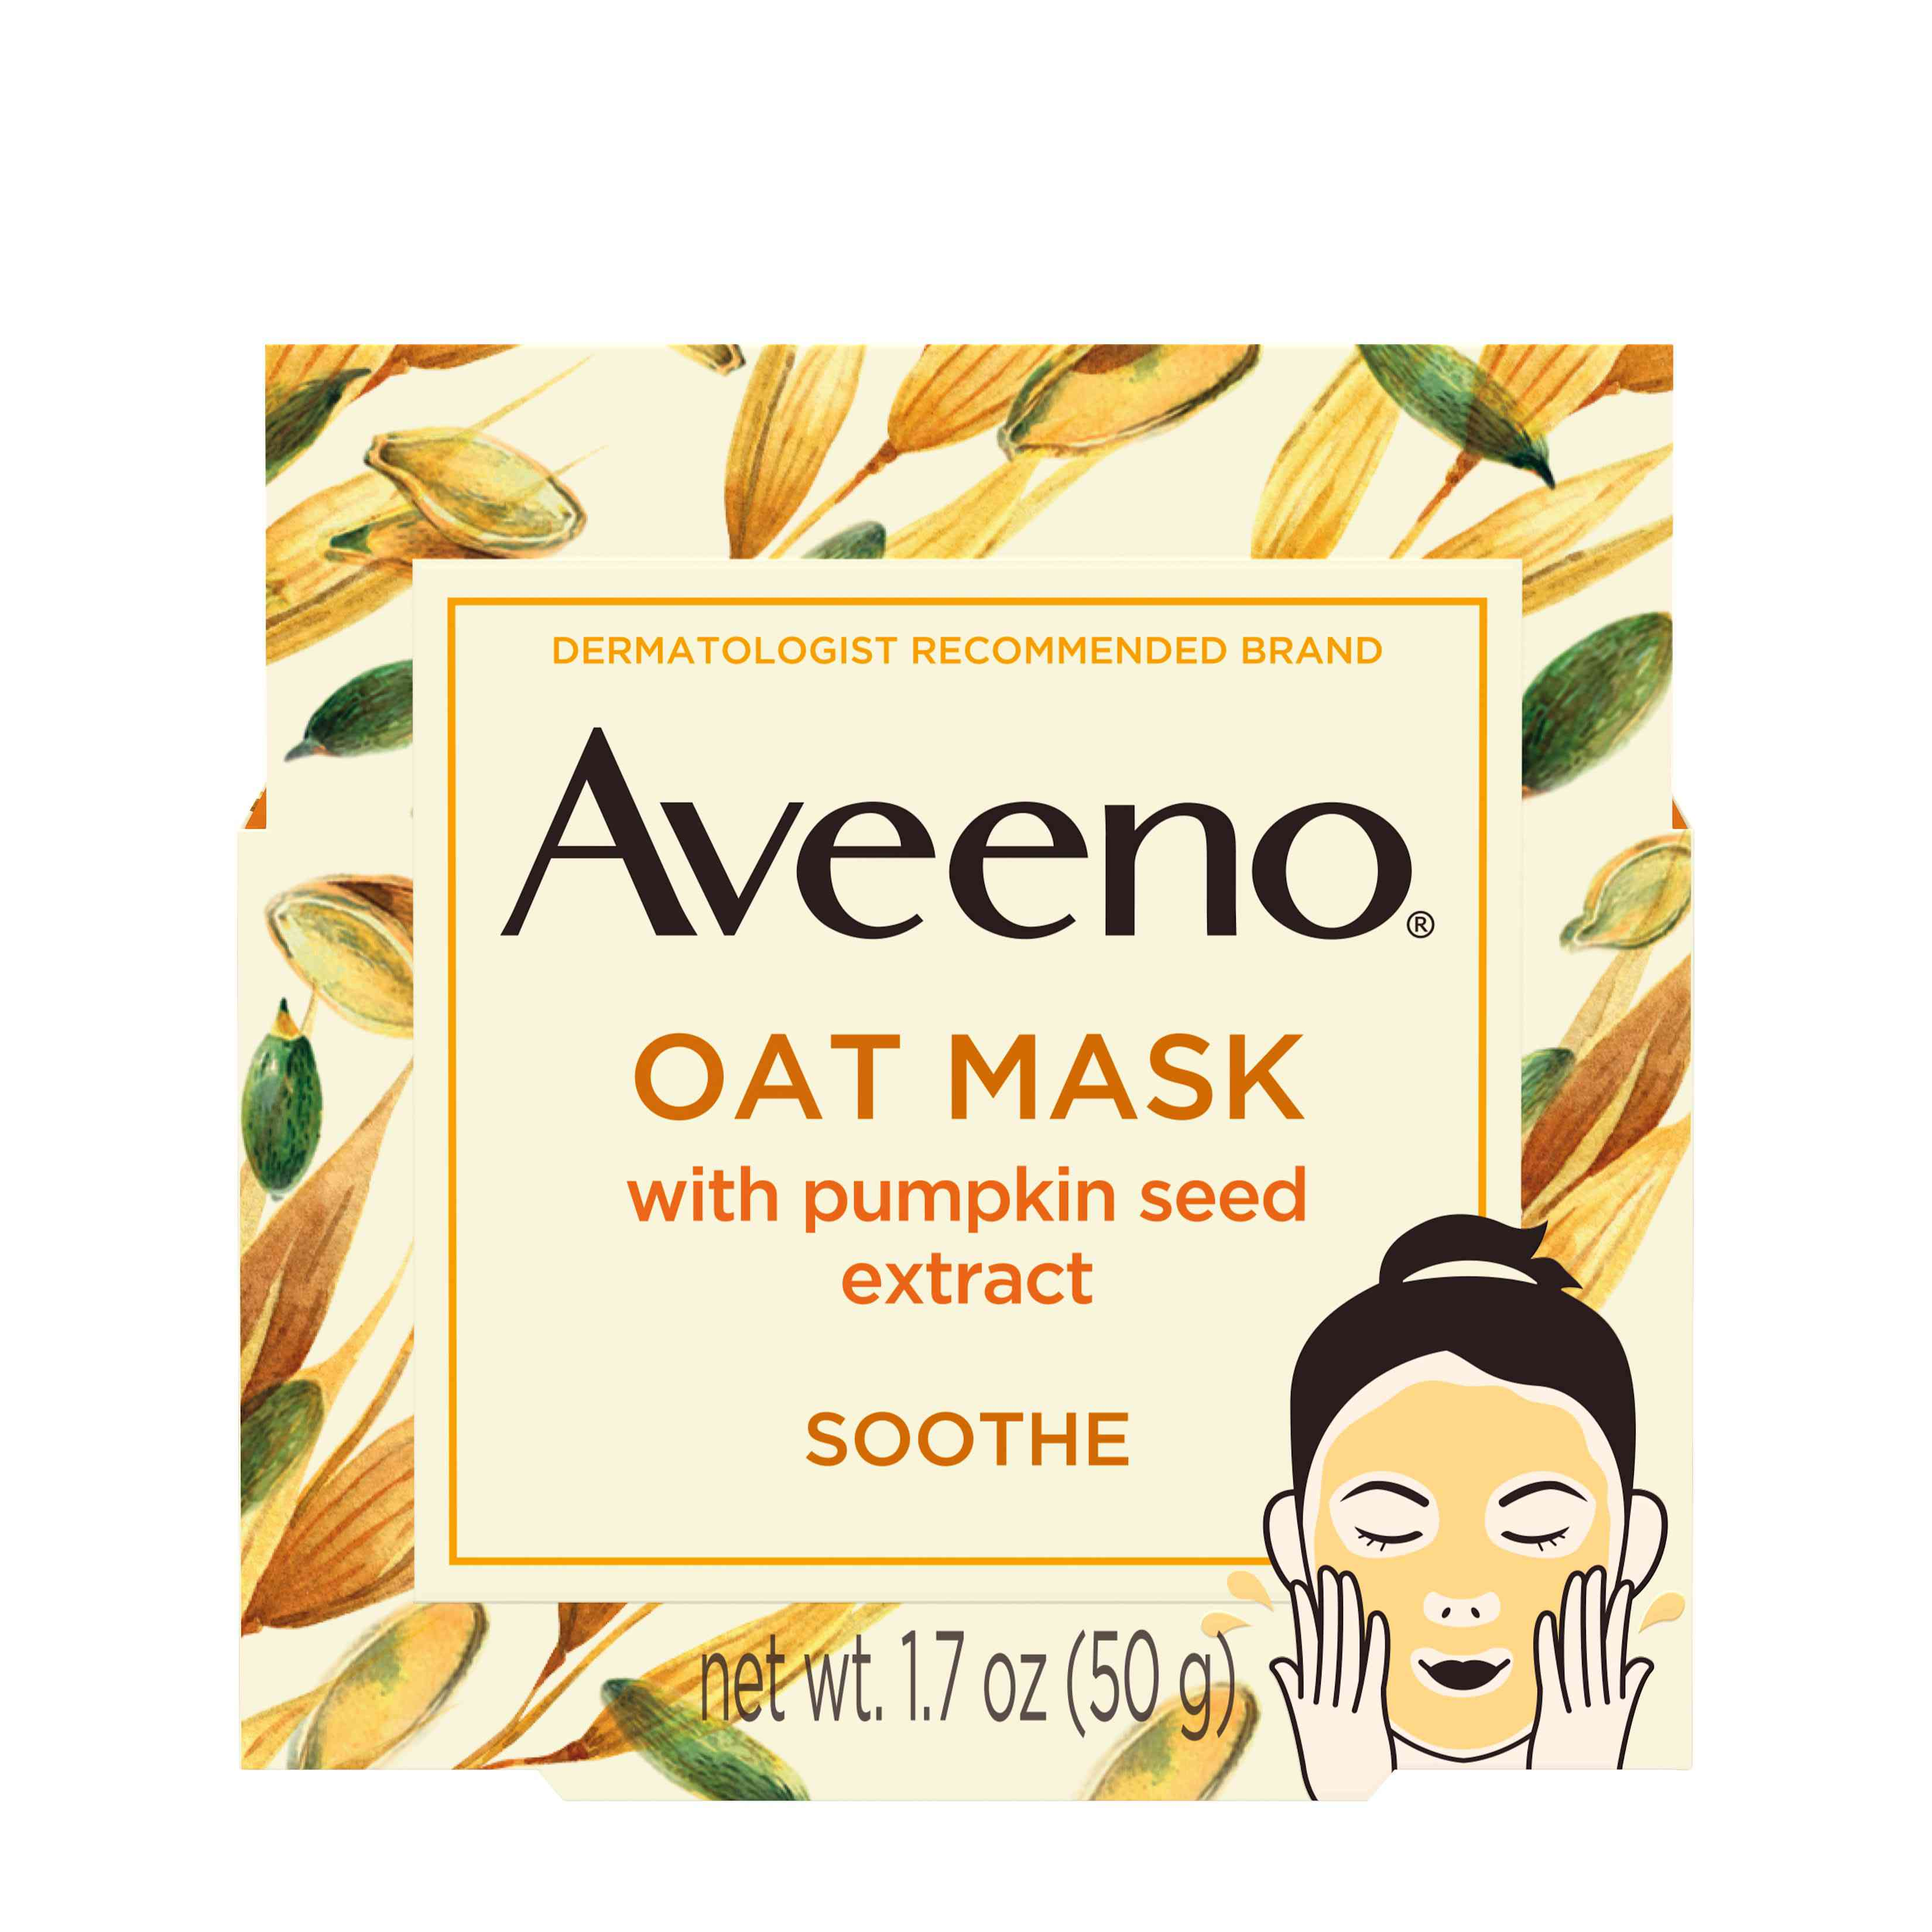 Aveeno Soothe Oat Face Mask with Pumpkin Seed Extract